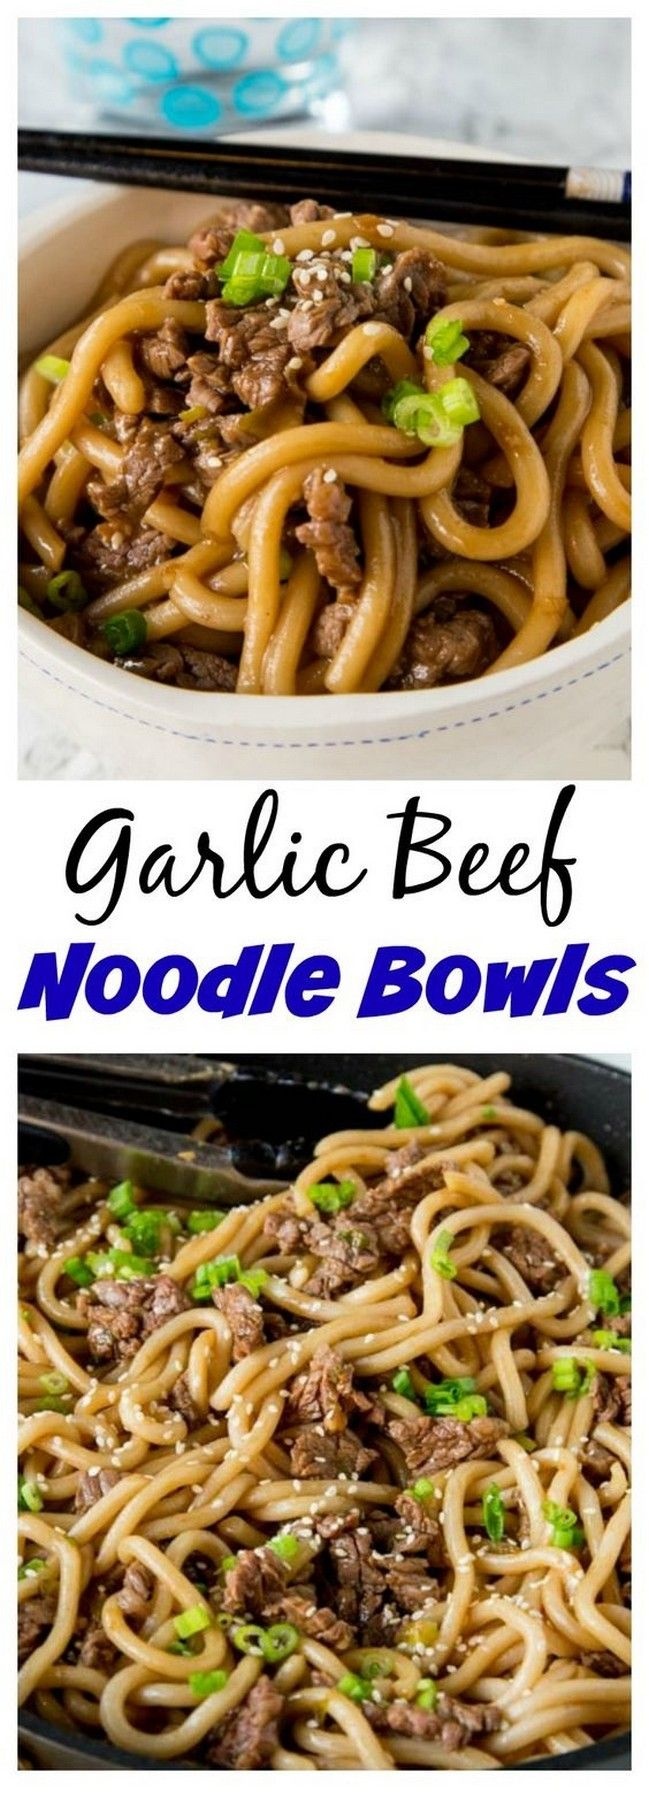 Garlic Beef Noodle Bowls | Family Favourite Recipes #beefsteakrecipe